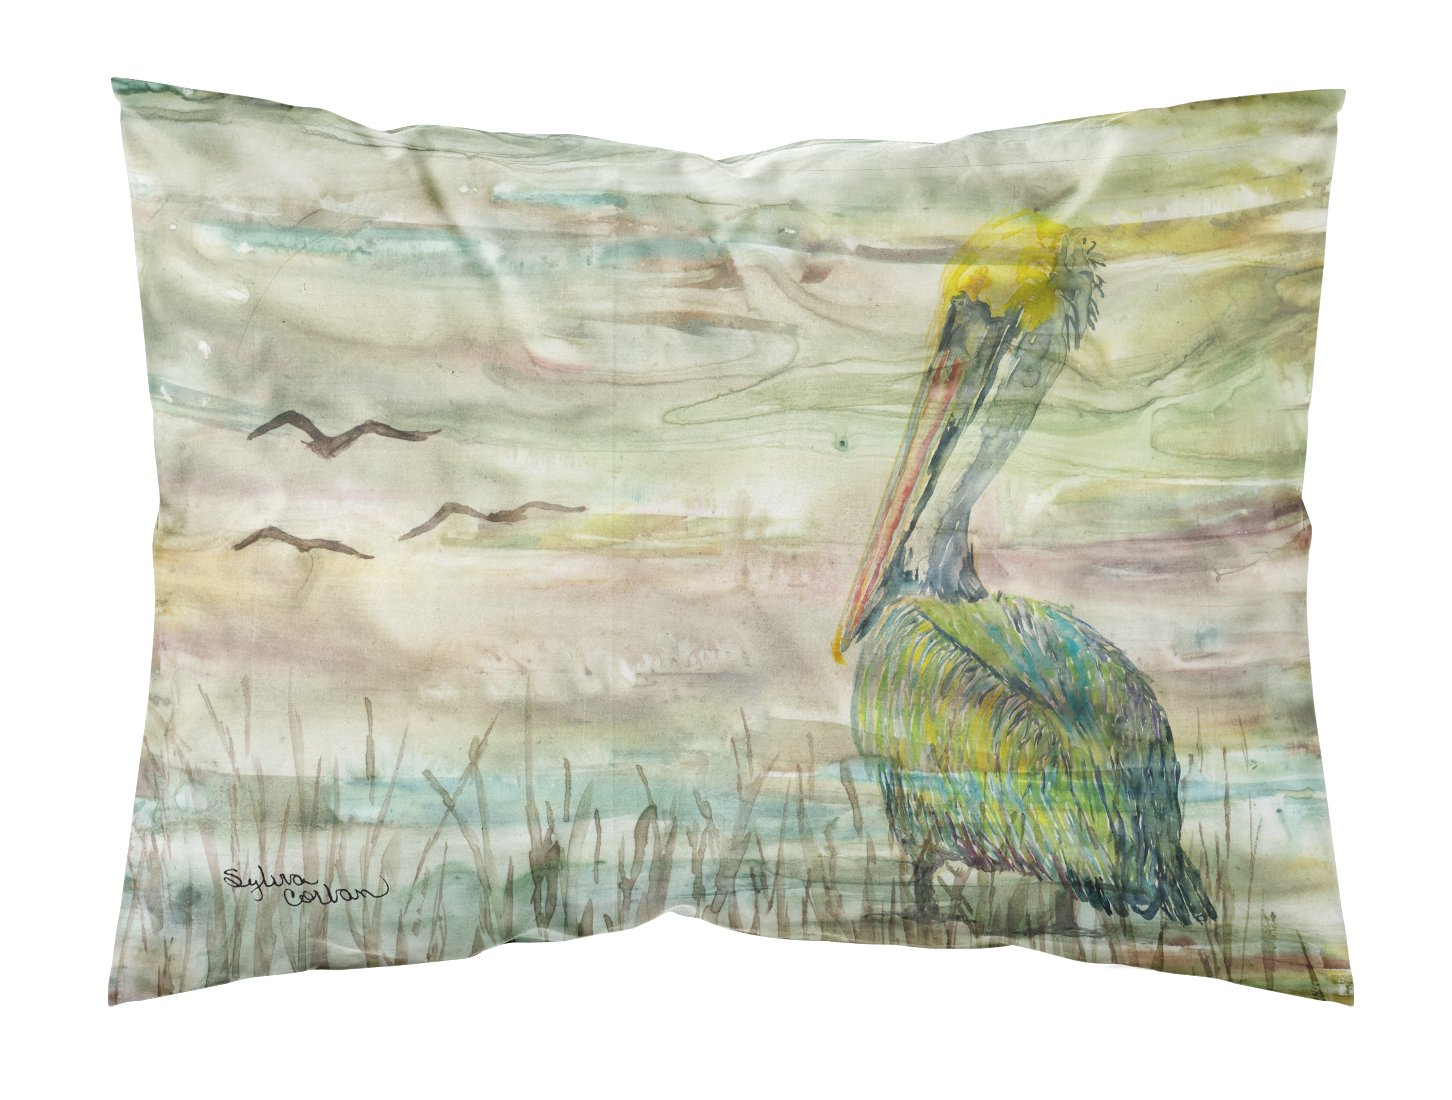 Pelican Sunset Fabric Standard Pillowcase SC2012PILLOWCASE by Caroline's Treasures